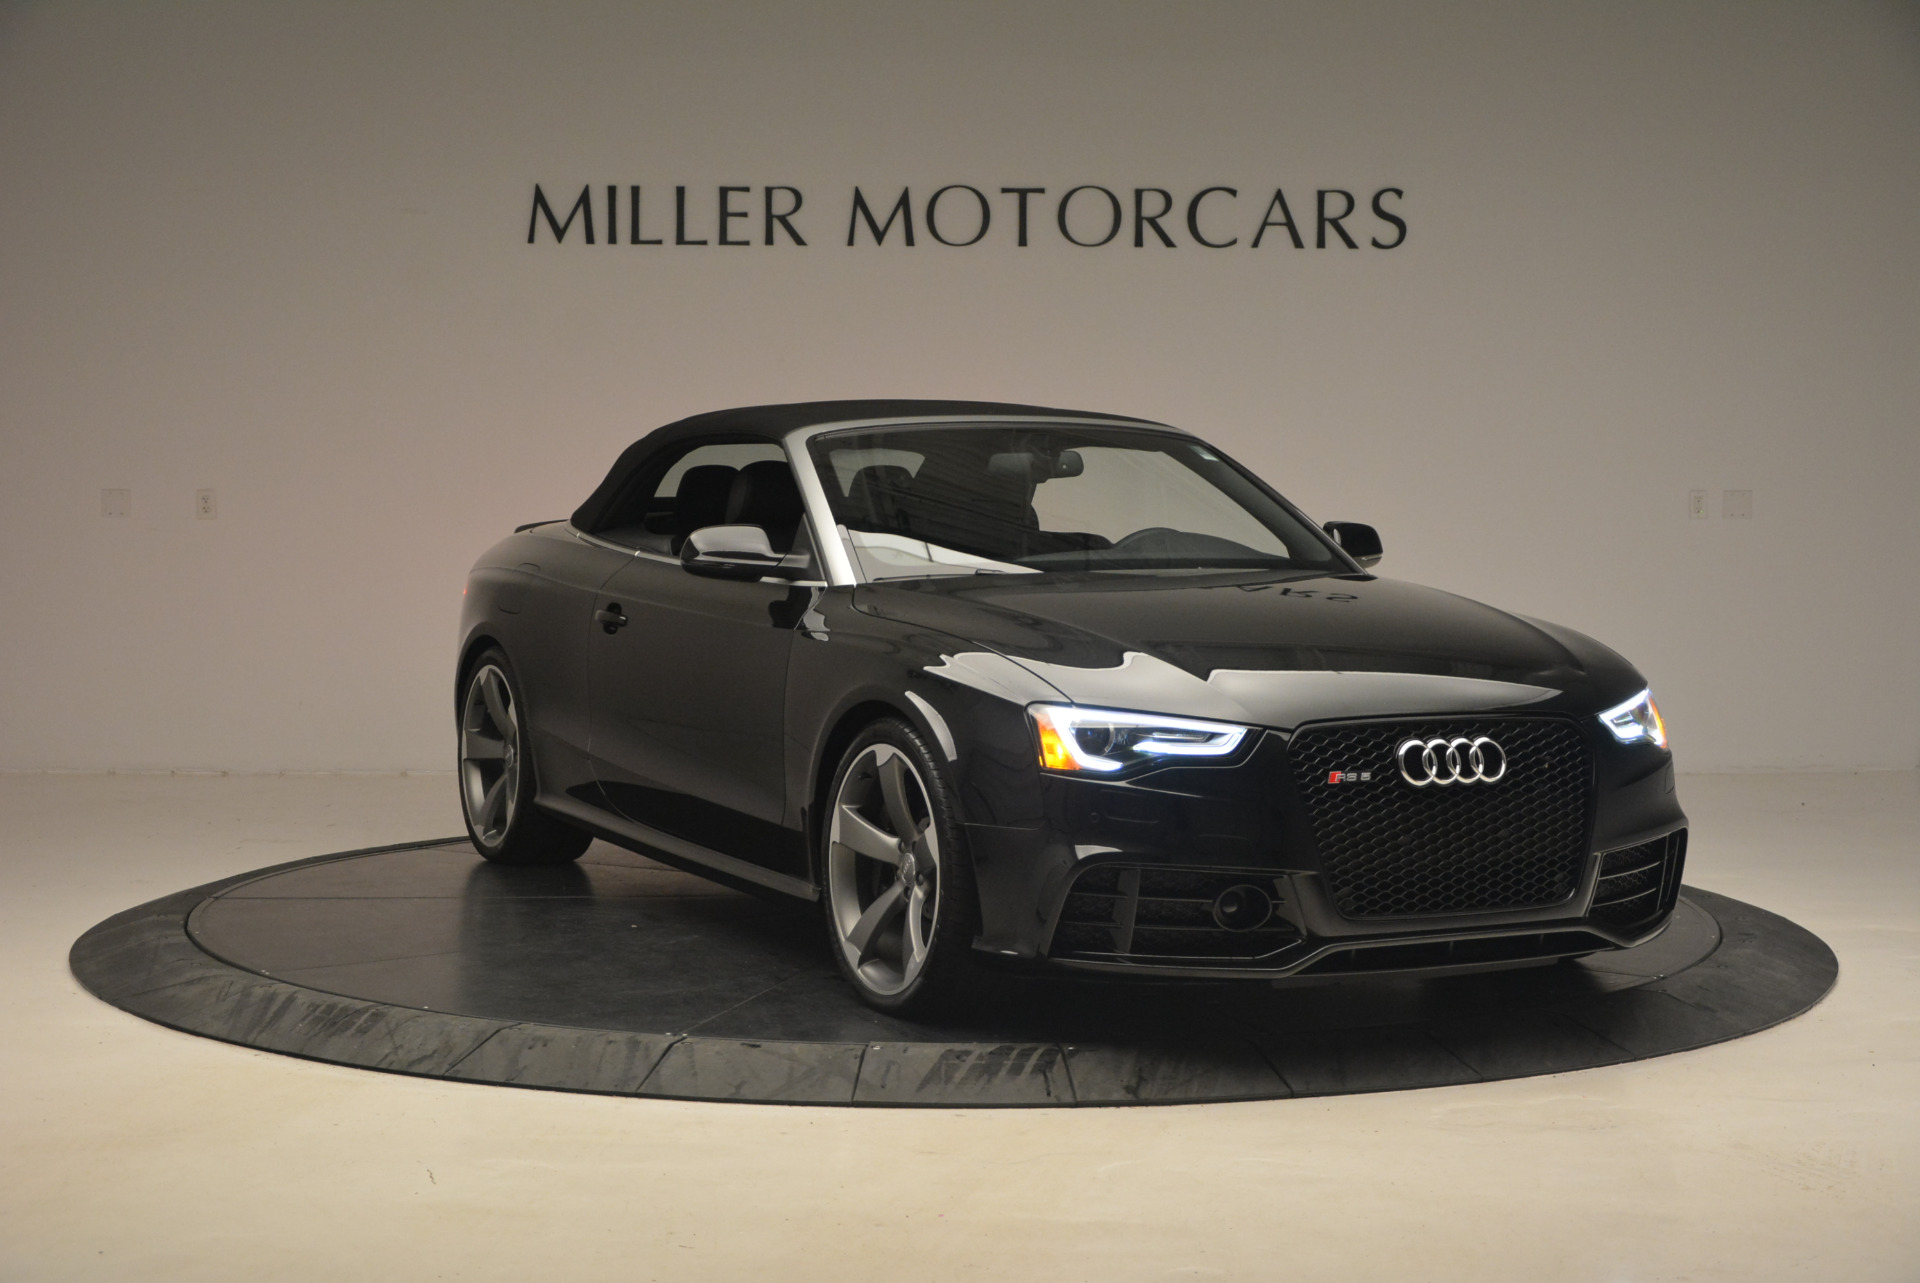 Used 2014 Audi RS 5 quattro For Sale In Greenwich, CT 1149_p23